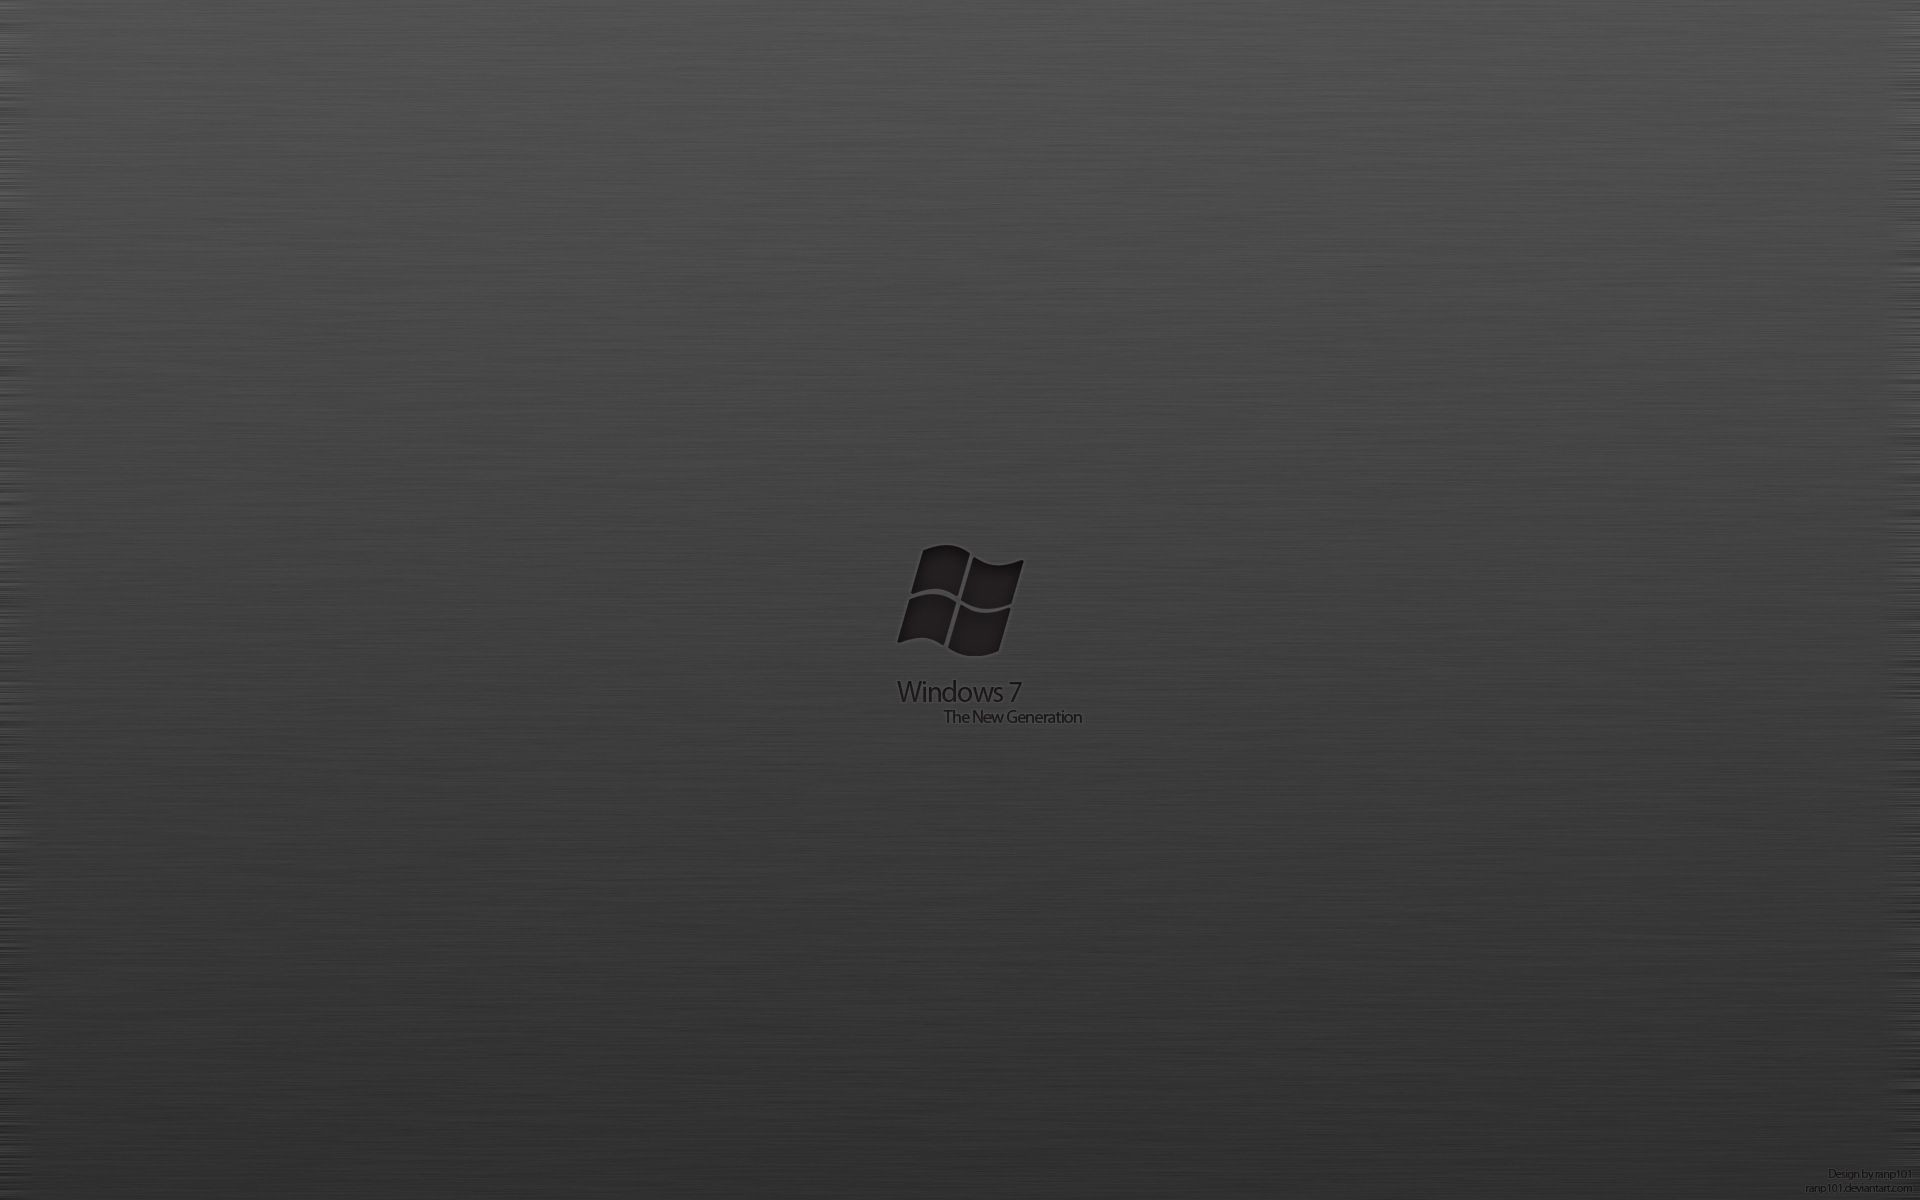 windows 7 black background (69+ images)